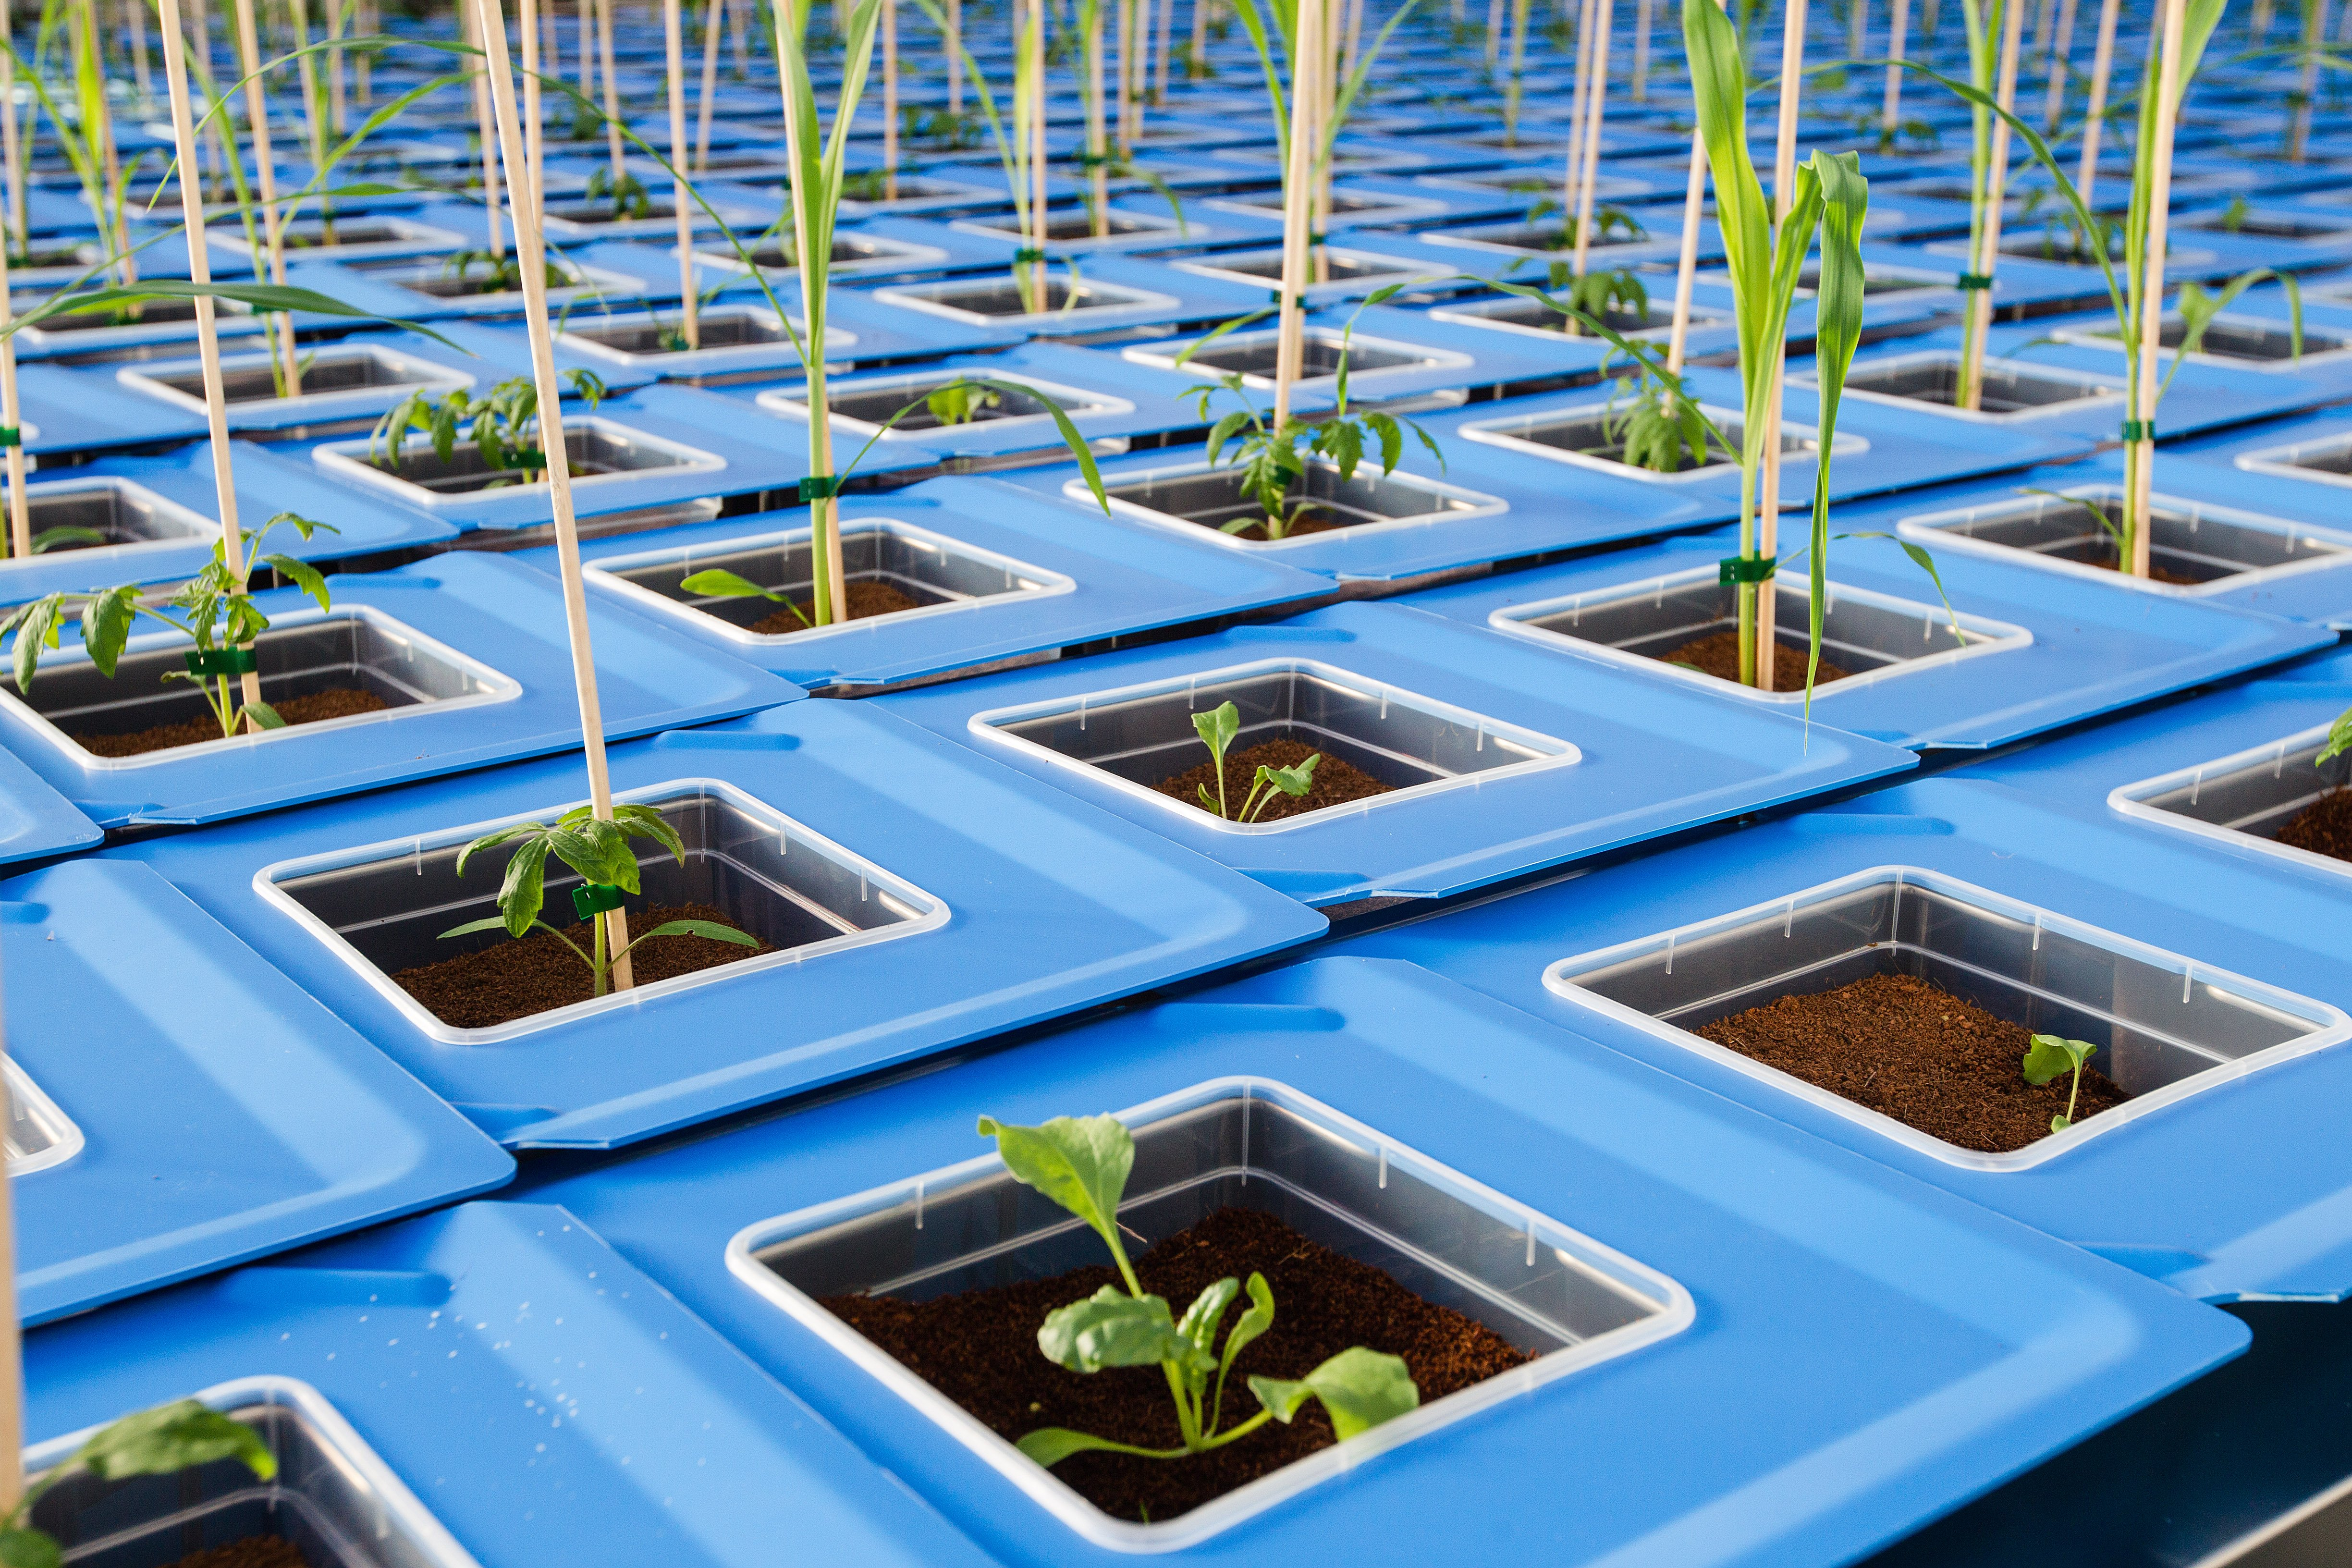 WPS systeem plant phenotyping